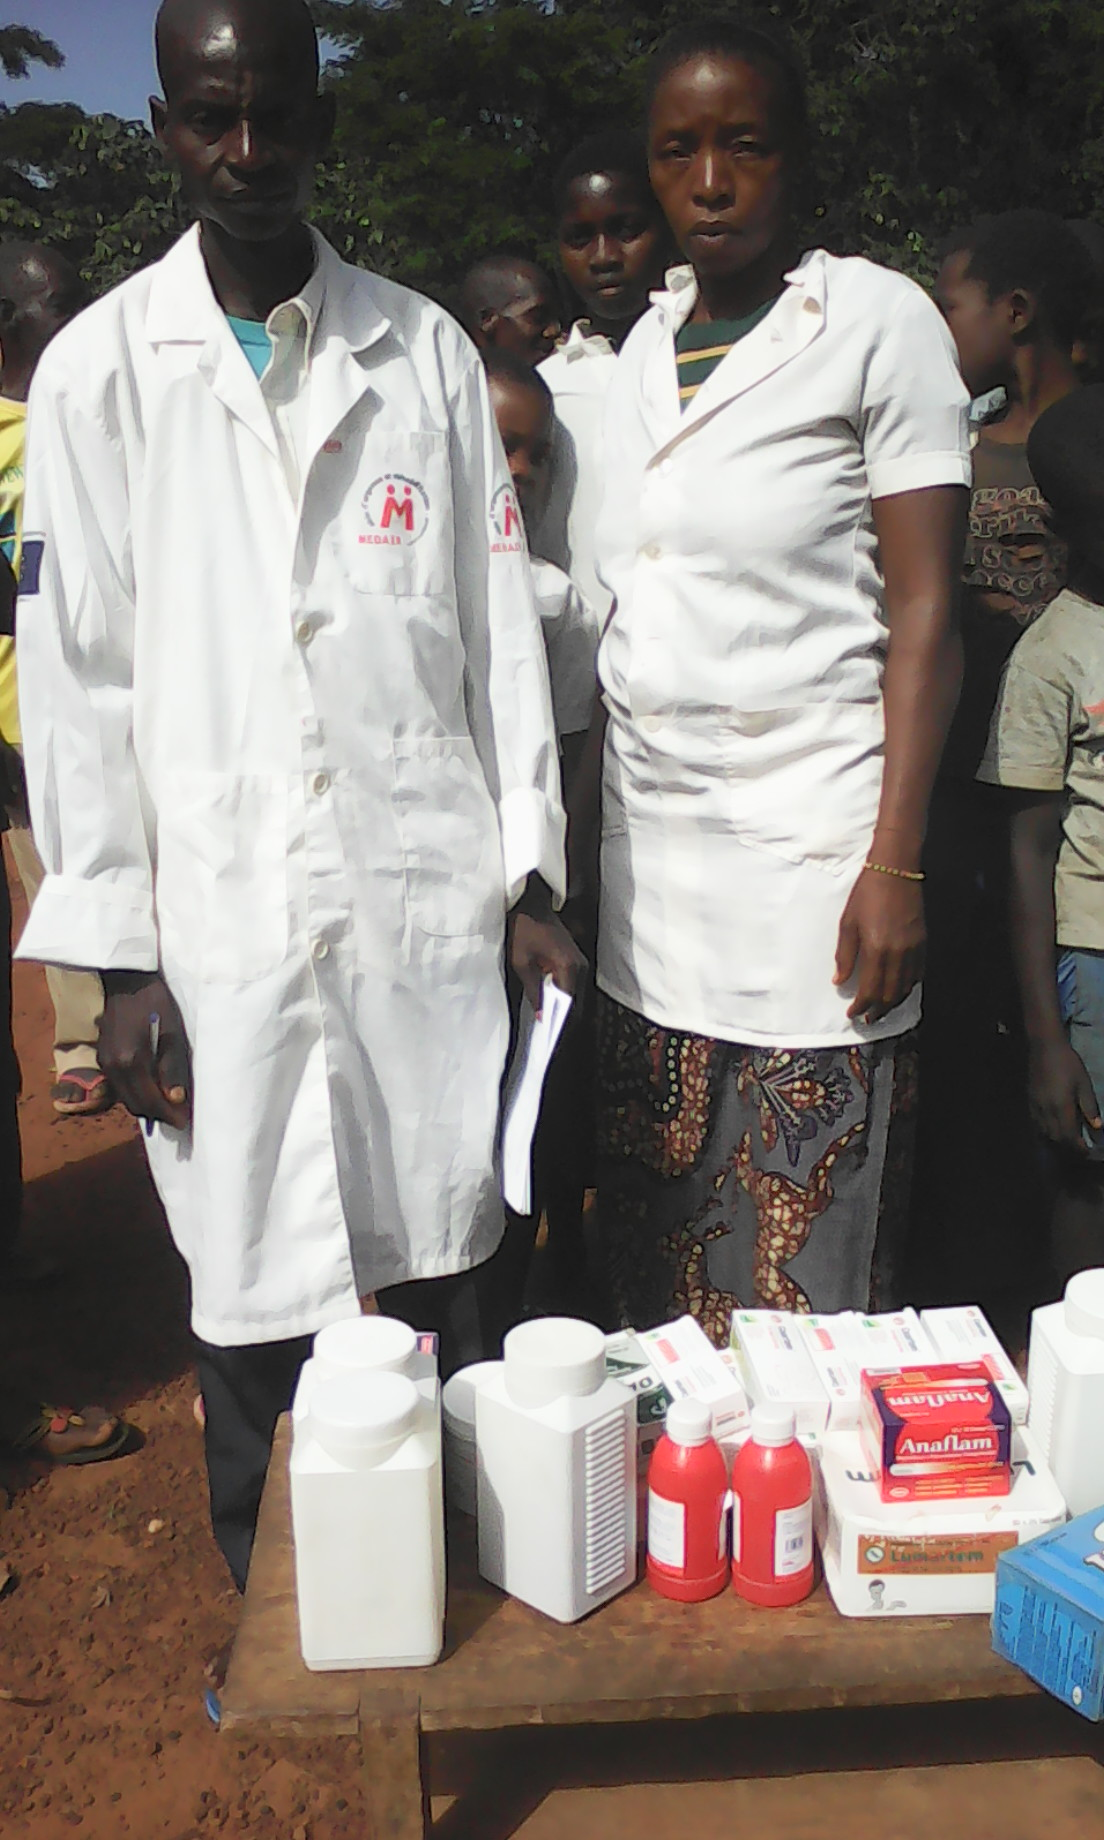 Medical Supplies in DR Congo